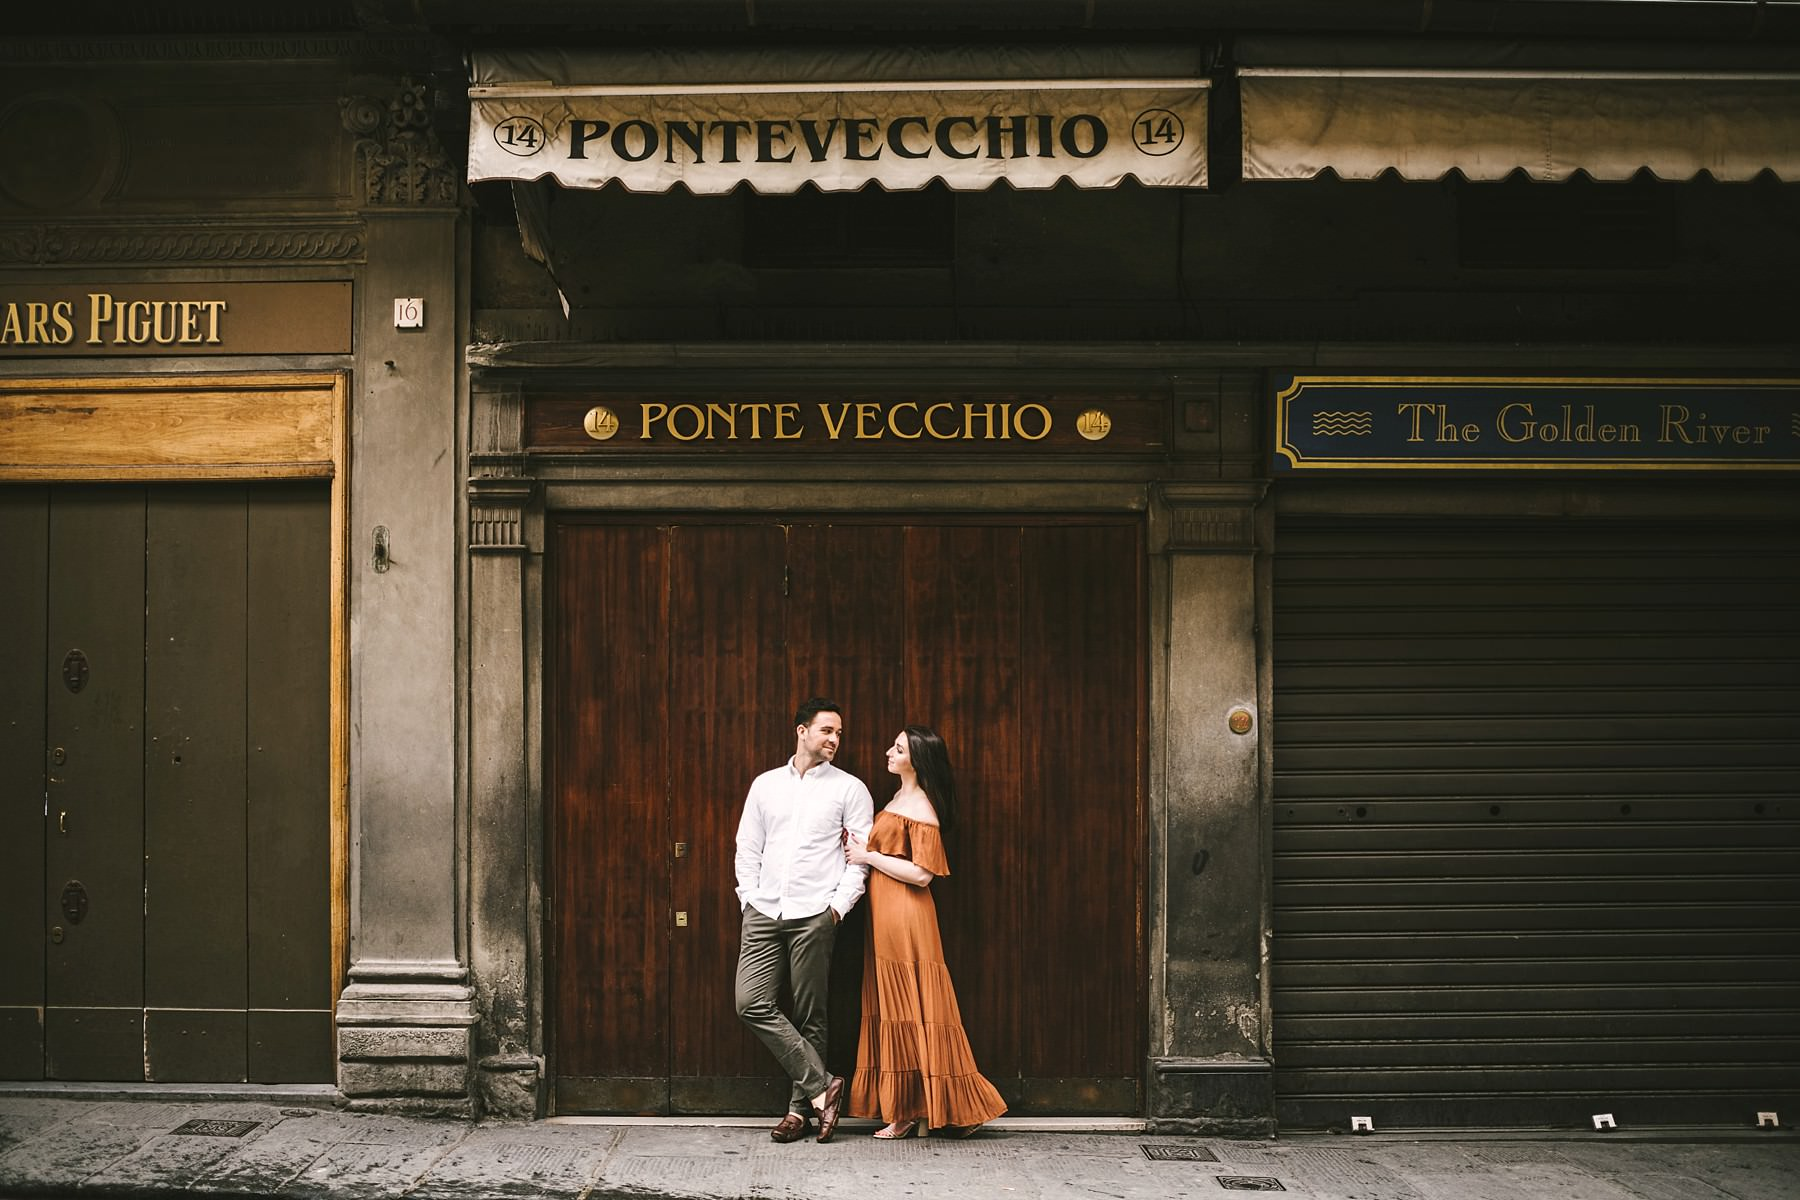 Gorgeous romantic and elegant couple portrait at Ponte Vecchio, Florence at sunrise time. Romantic experience with anyone around the couple